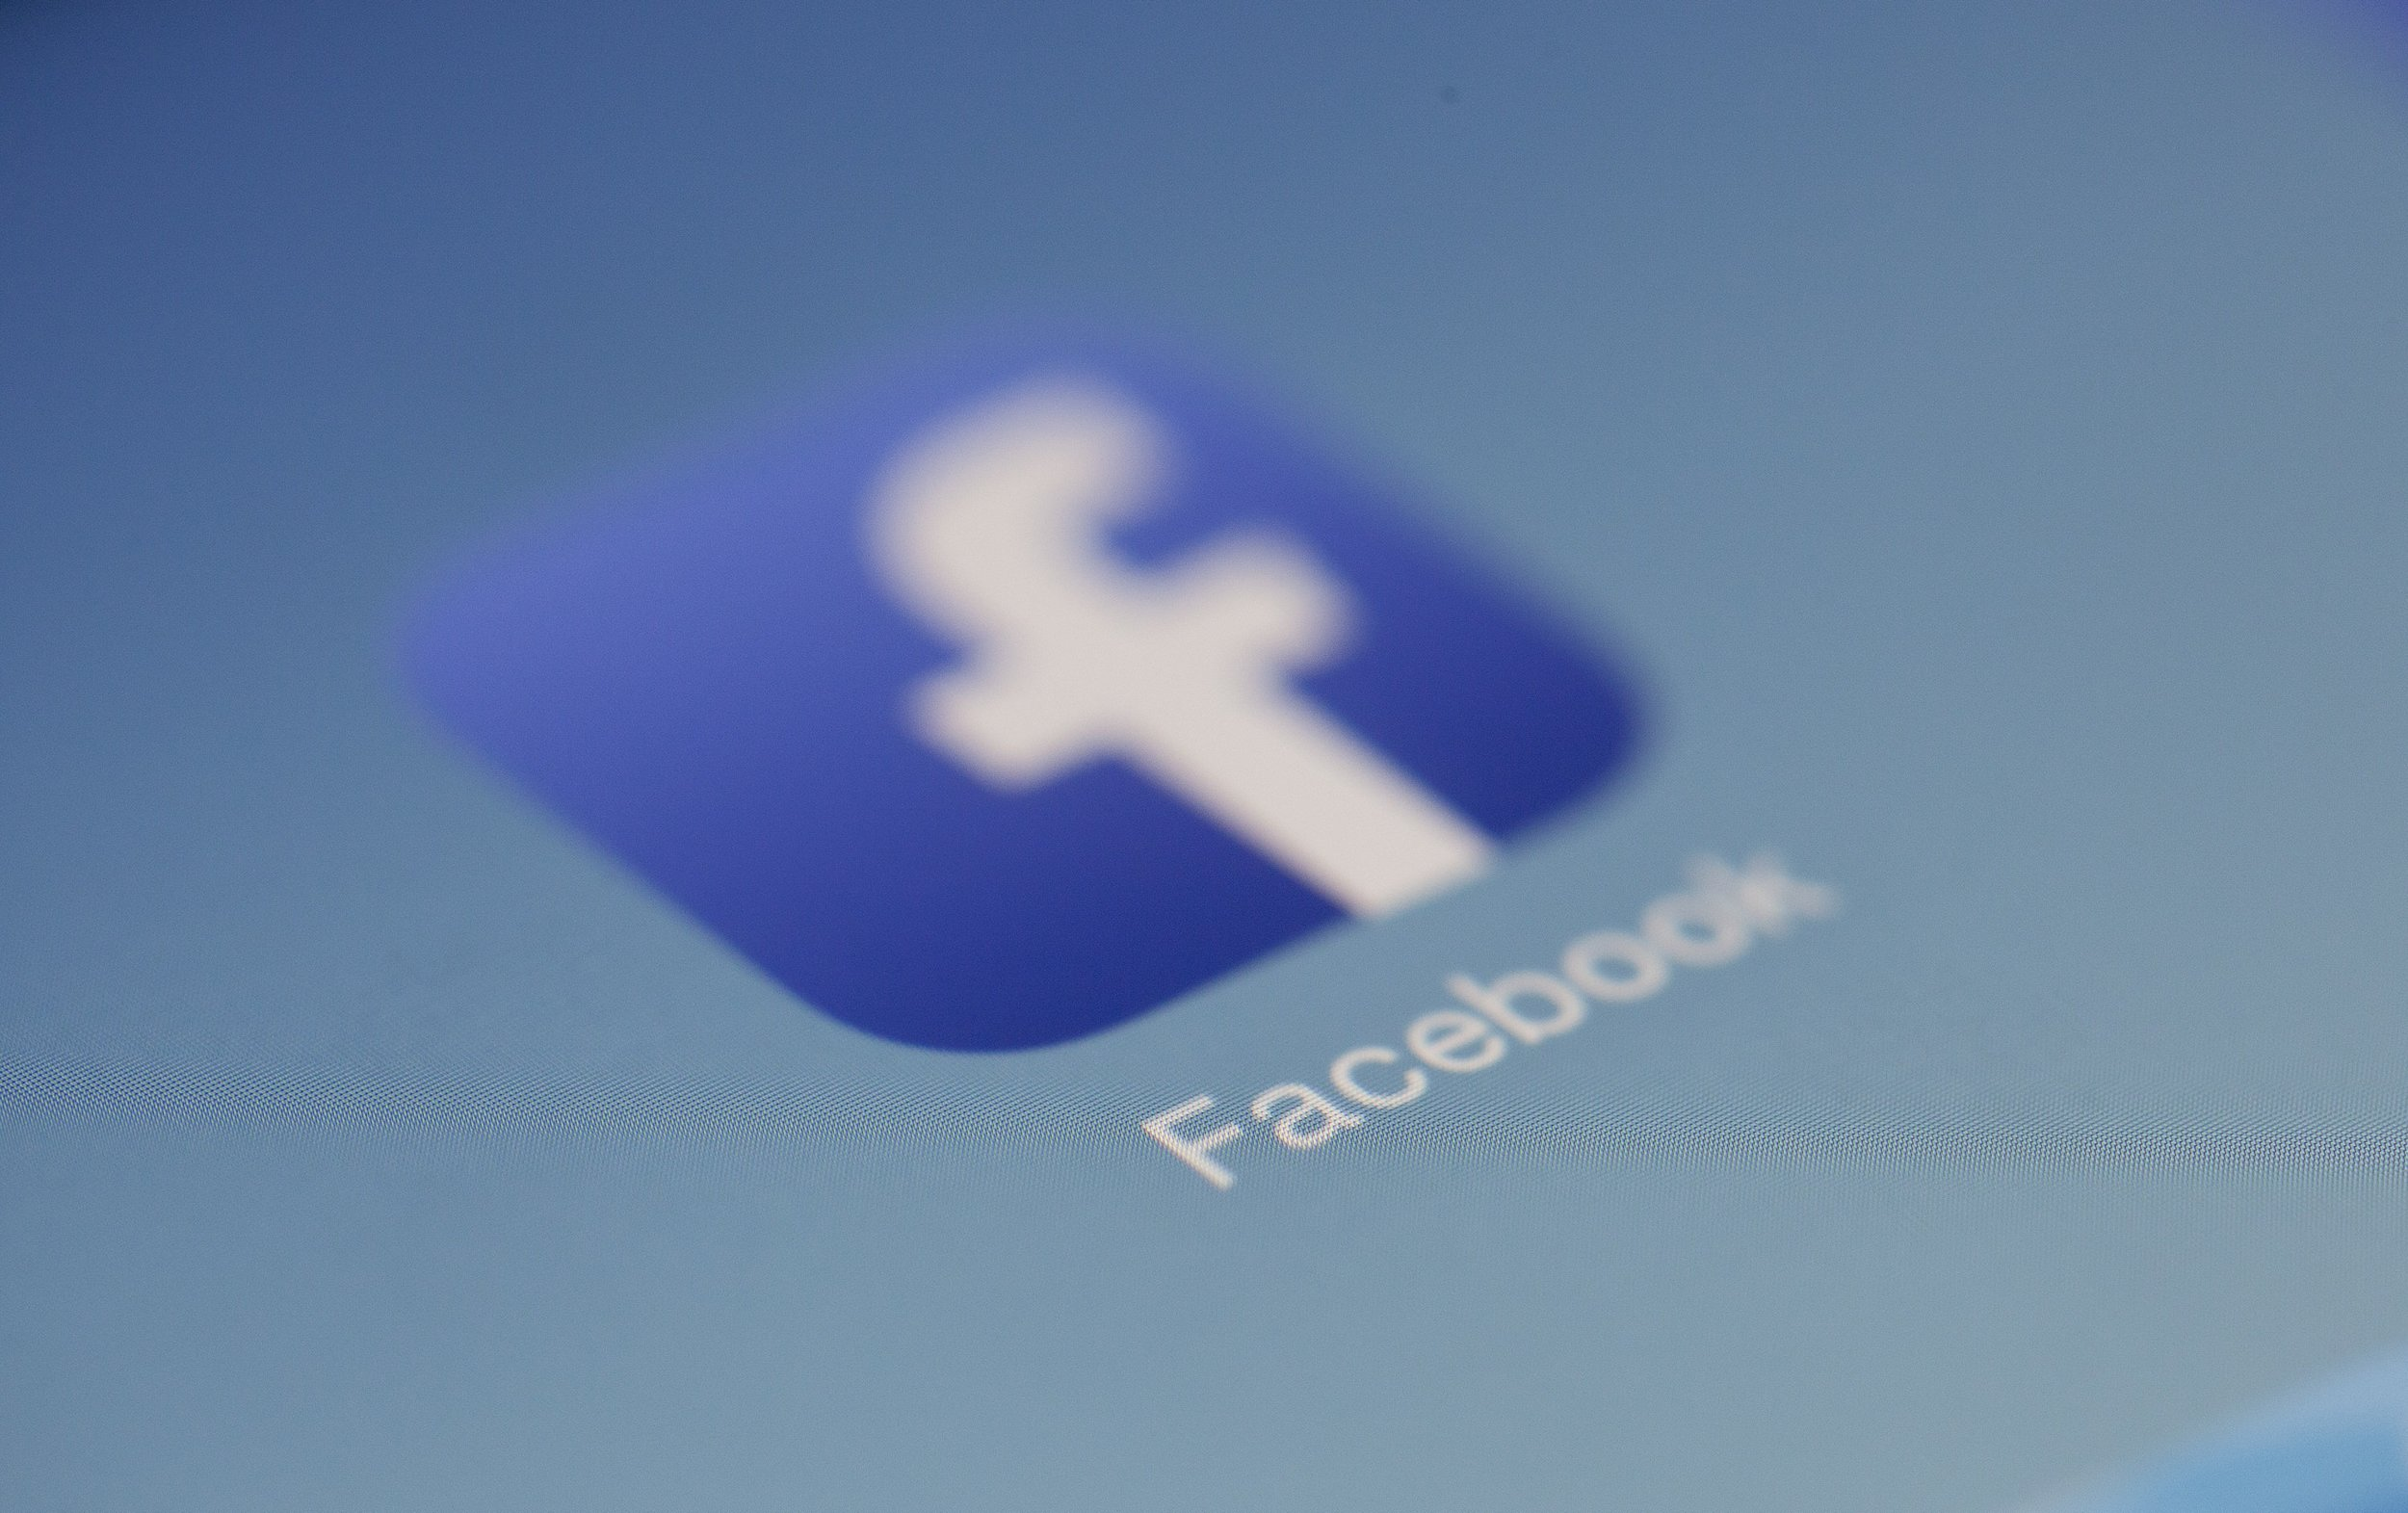 Social Media Bournemouth - Facebook has been trialing a new feature